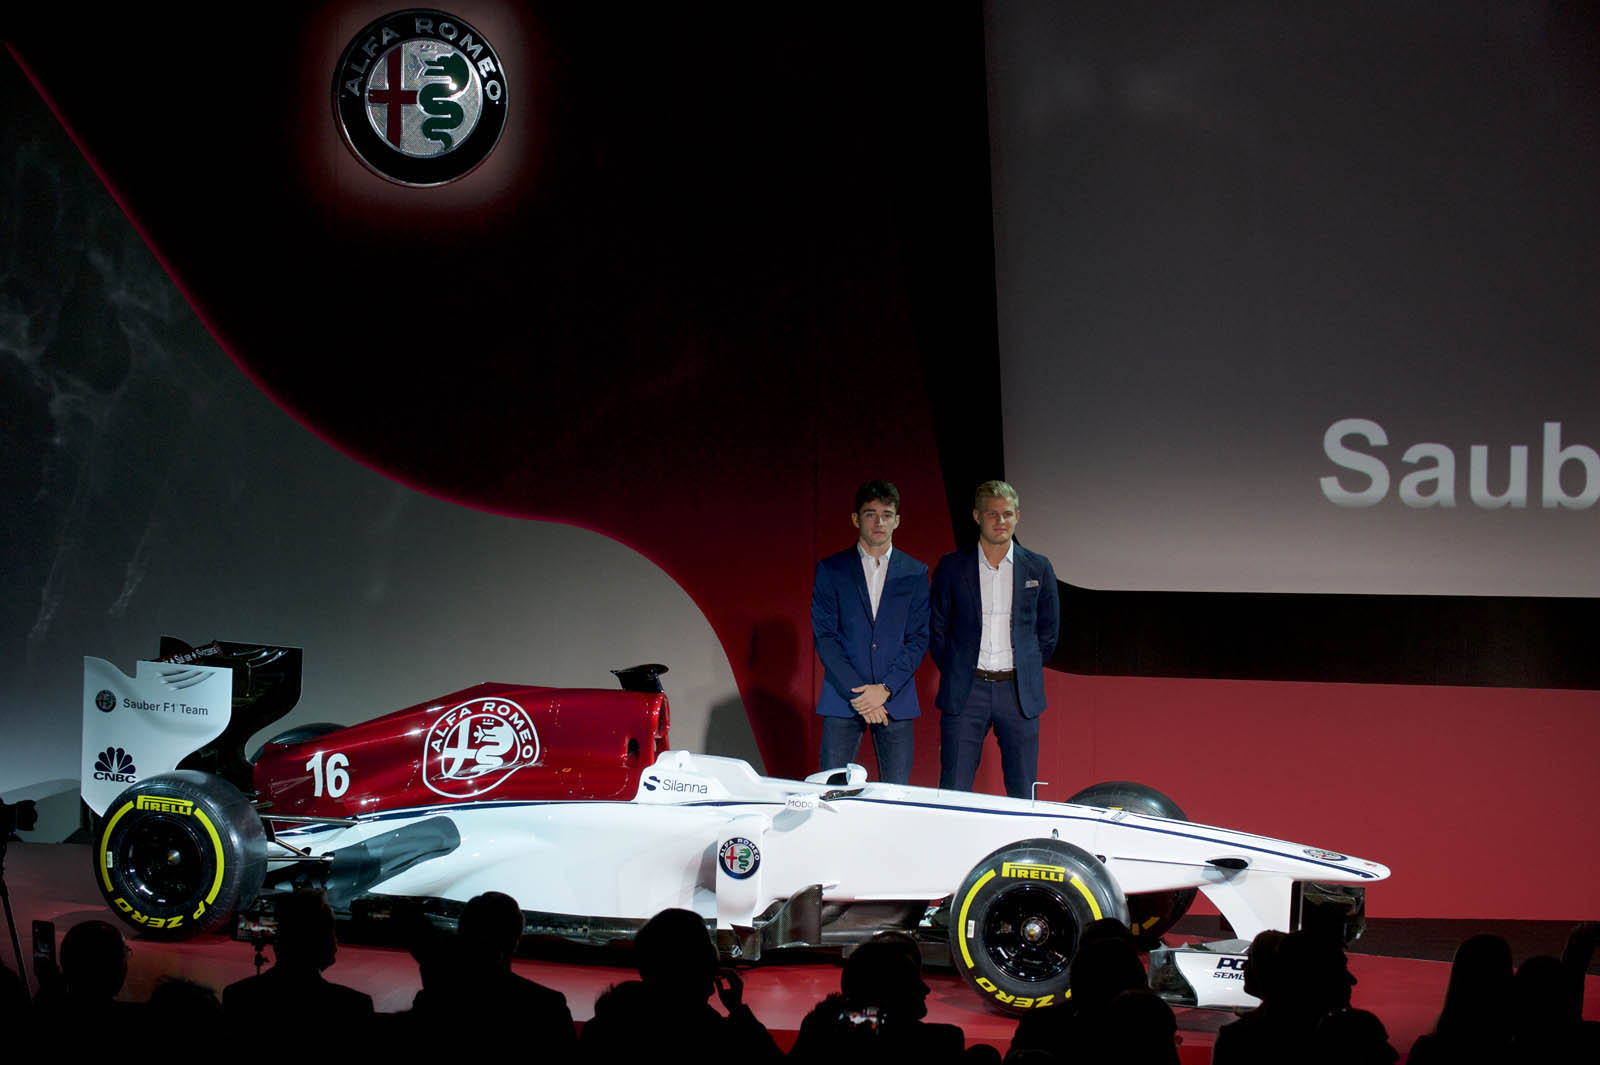 alfa romeo sauber f1 officially launches with new livery driver lineup carscoops. Black Bedroom Furniture Sets. Home Design Ideas